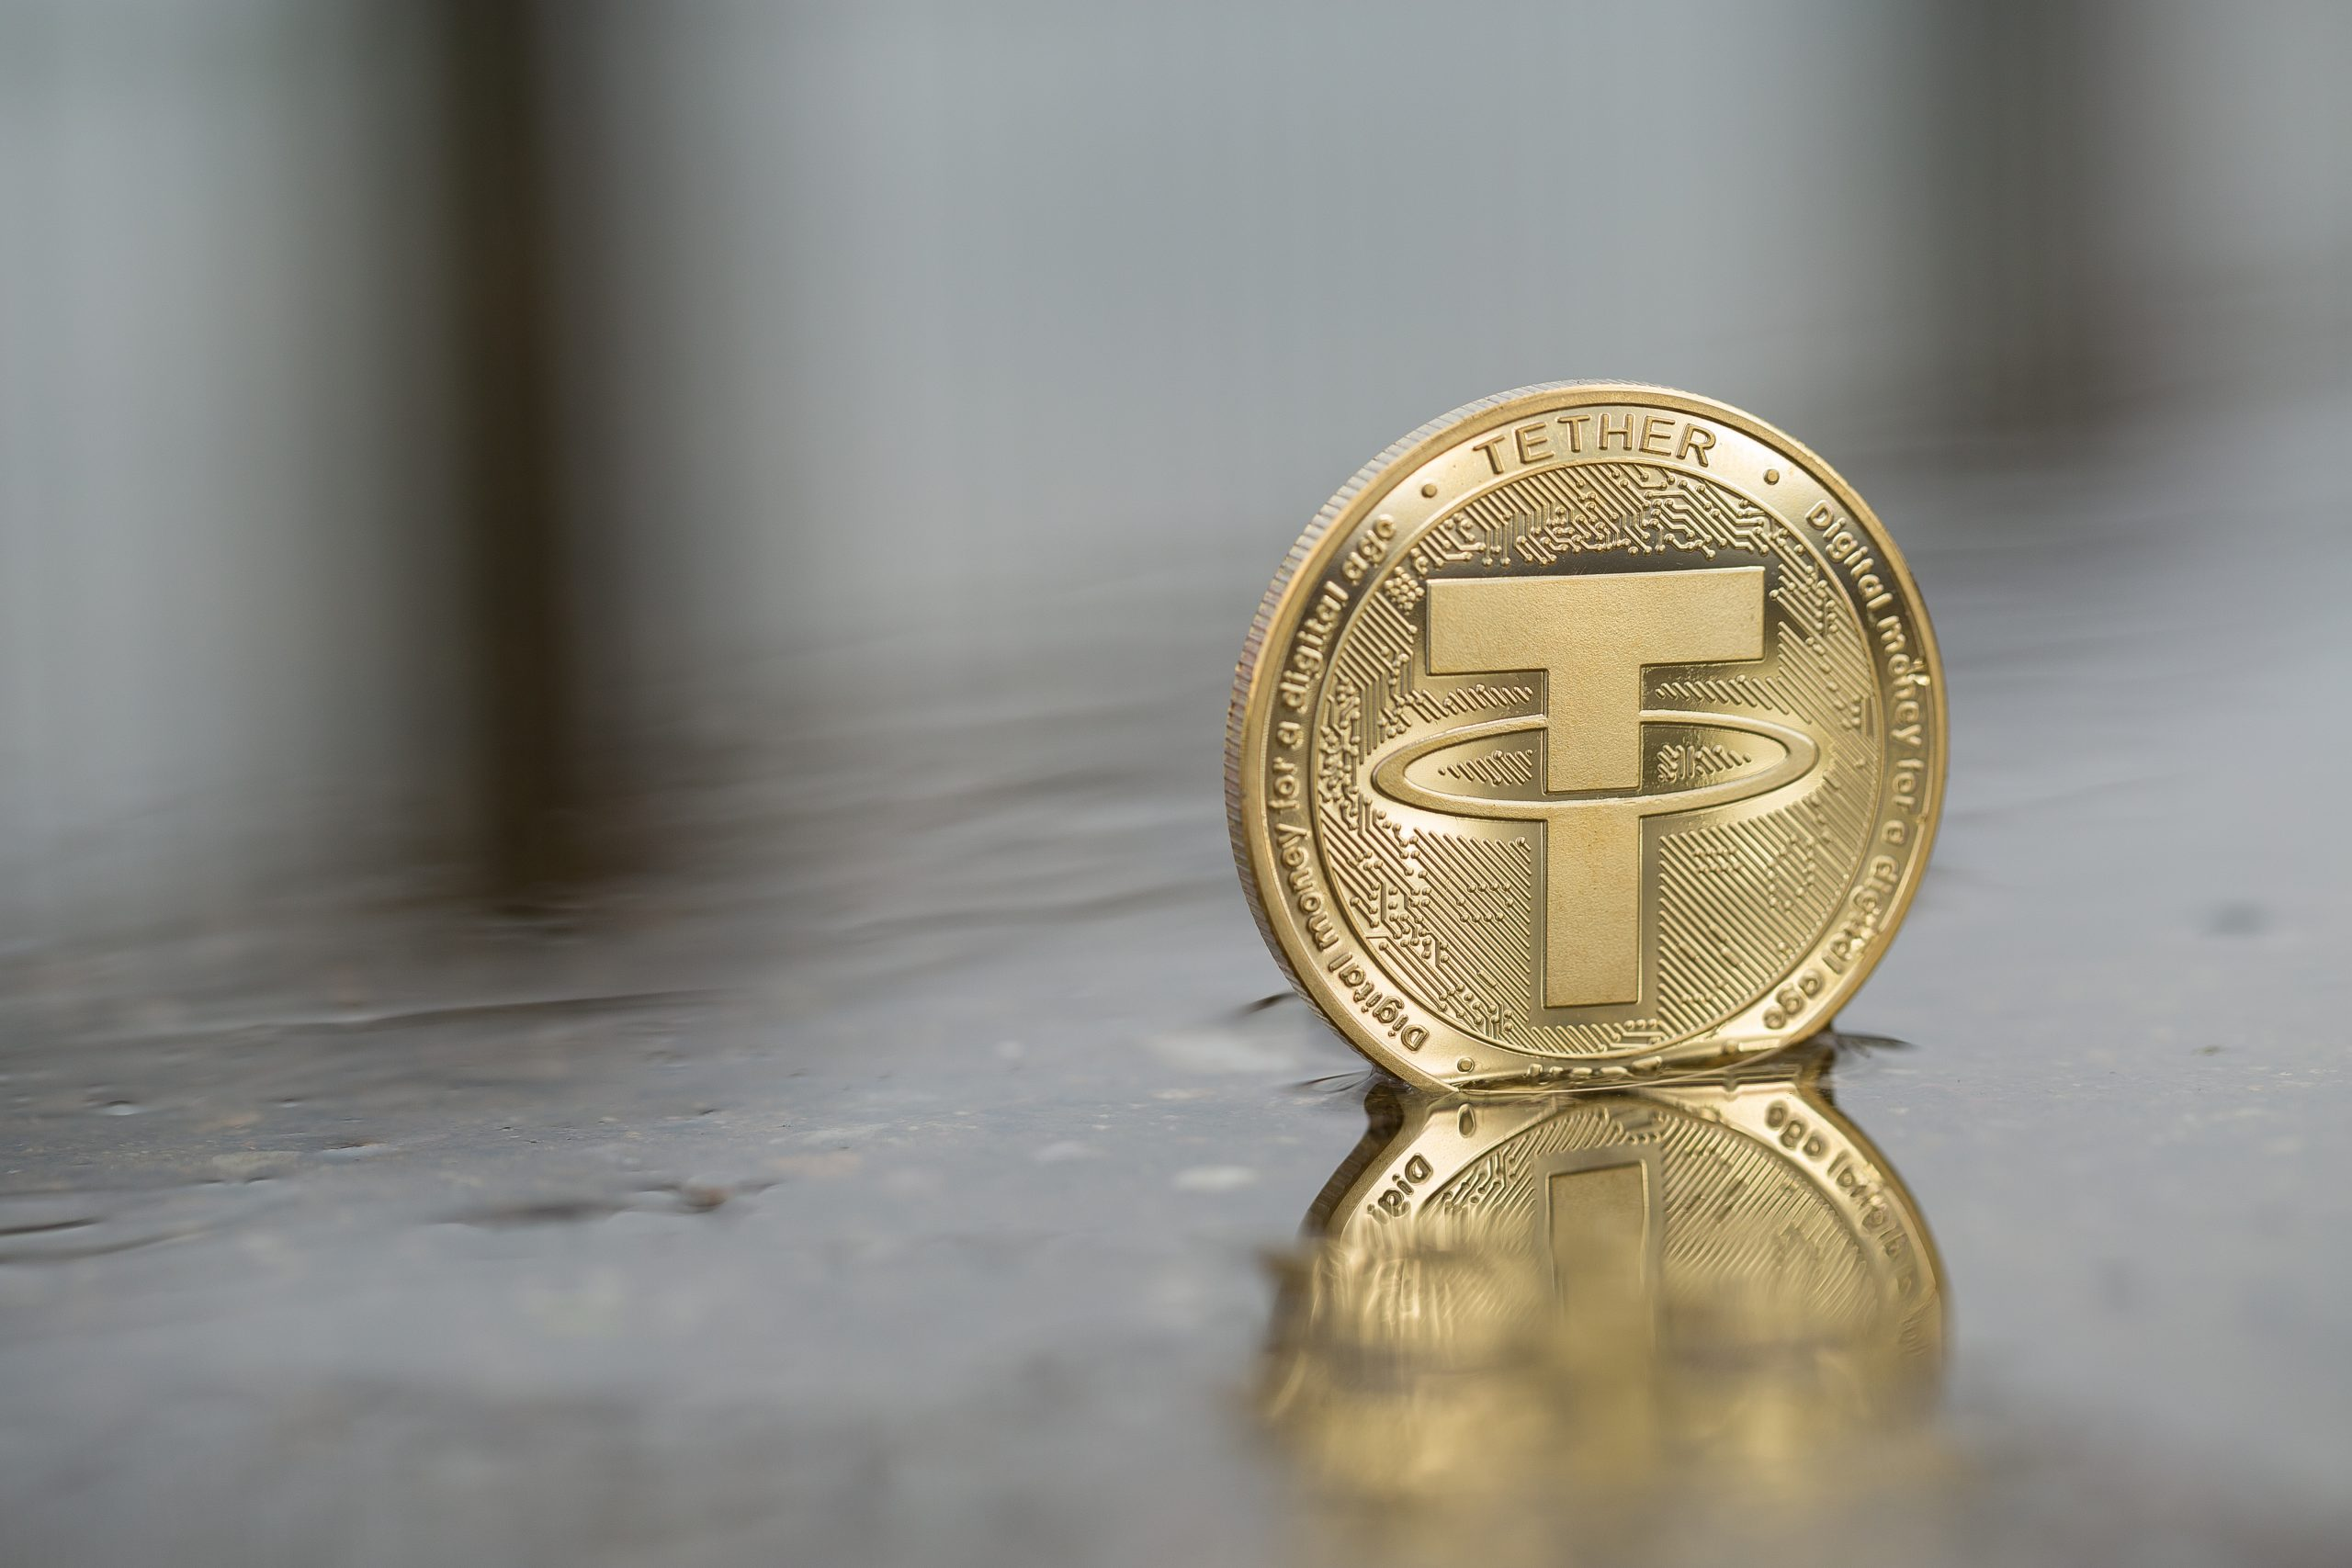 Is Tether Correct a Rip-off to Enrich Bitcoin Traders?